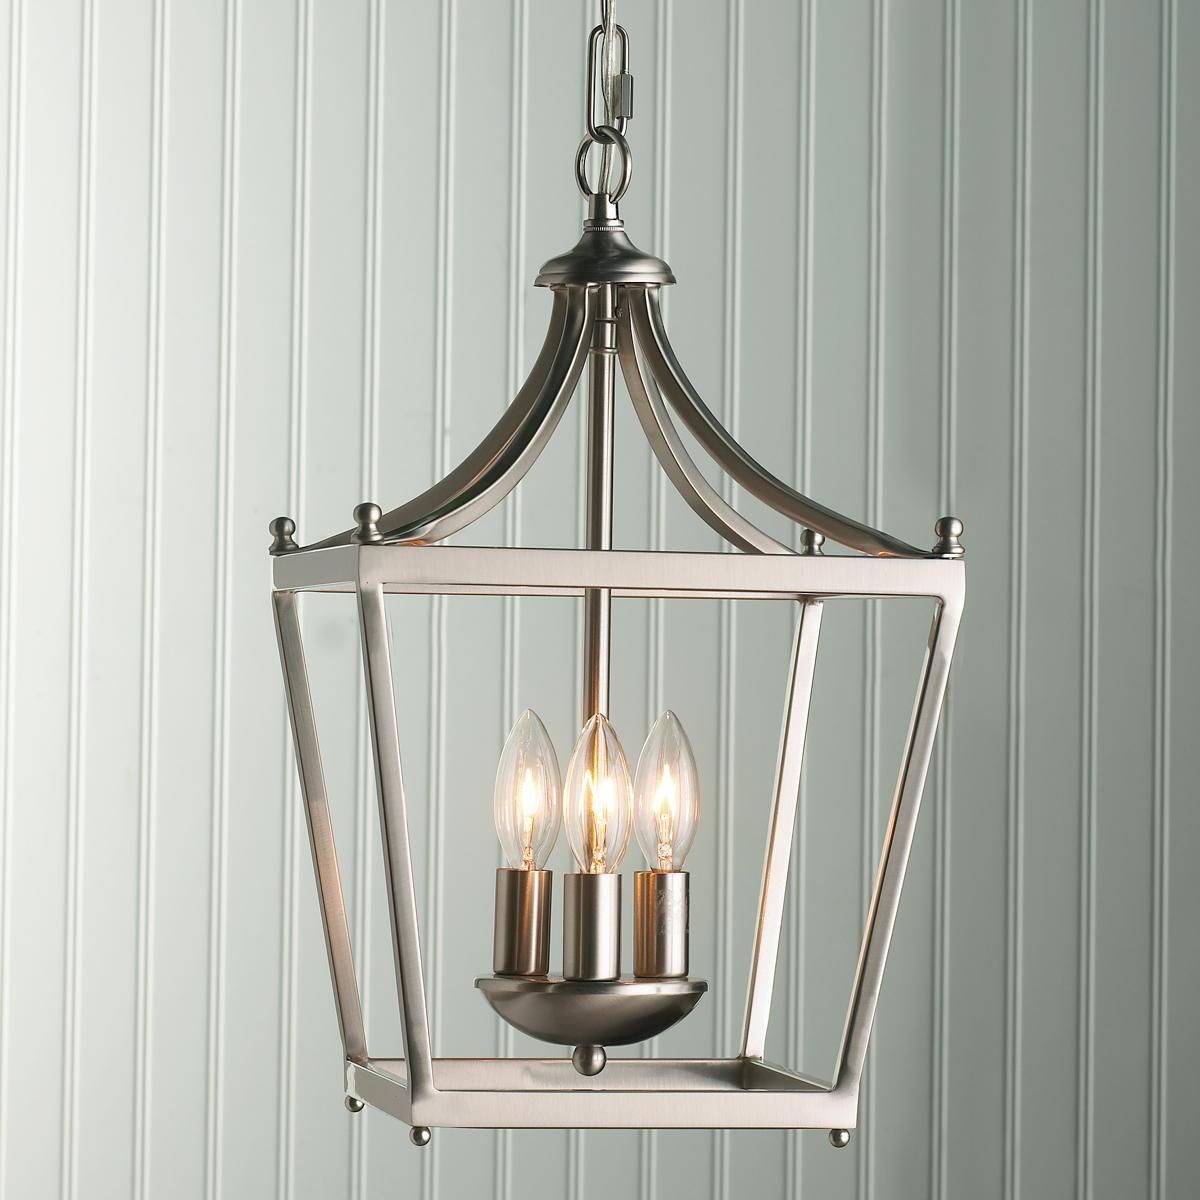 kitchen lantern lights A Pair of these over a kitchen table or island would be cute Get the